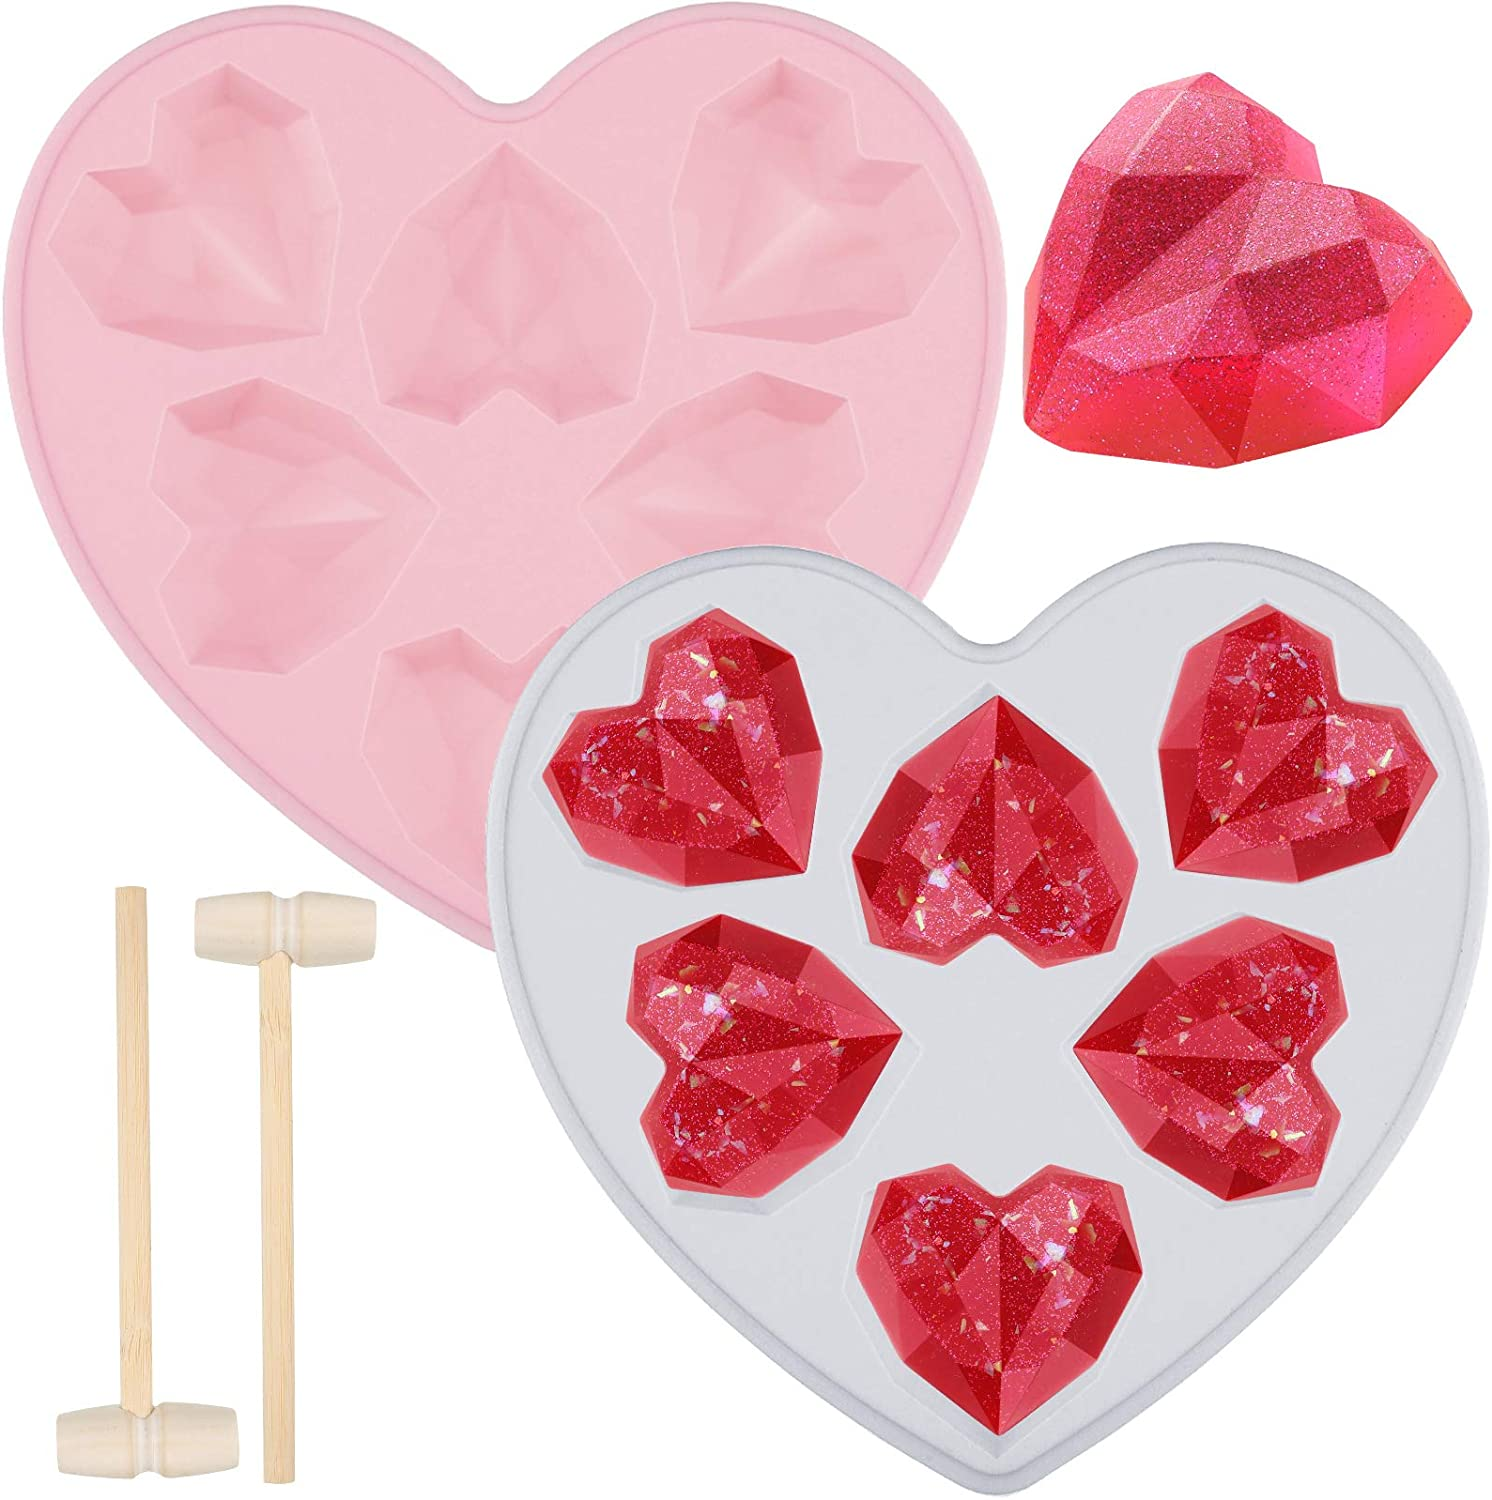 2 Pieces Diamond Heart Love Shape Silicone Valentine's Day Cake Mold Pink and Blue Silicone Cupcake Mold Oven Safe Chocolate Mousse Dessert Baking Pan with 2 Pieces Wooden Hammer Mallet Pounding Tool